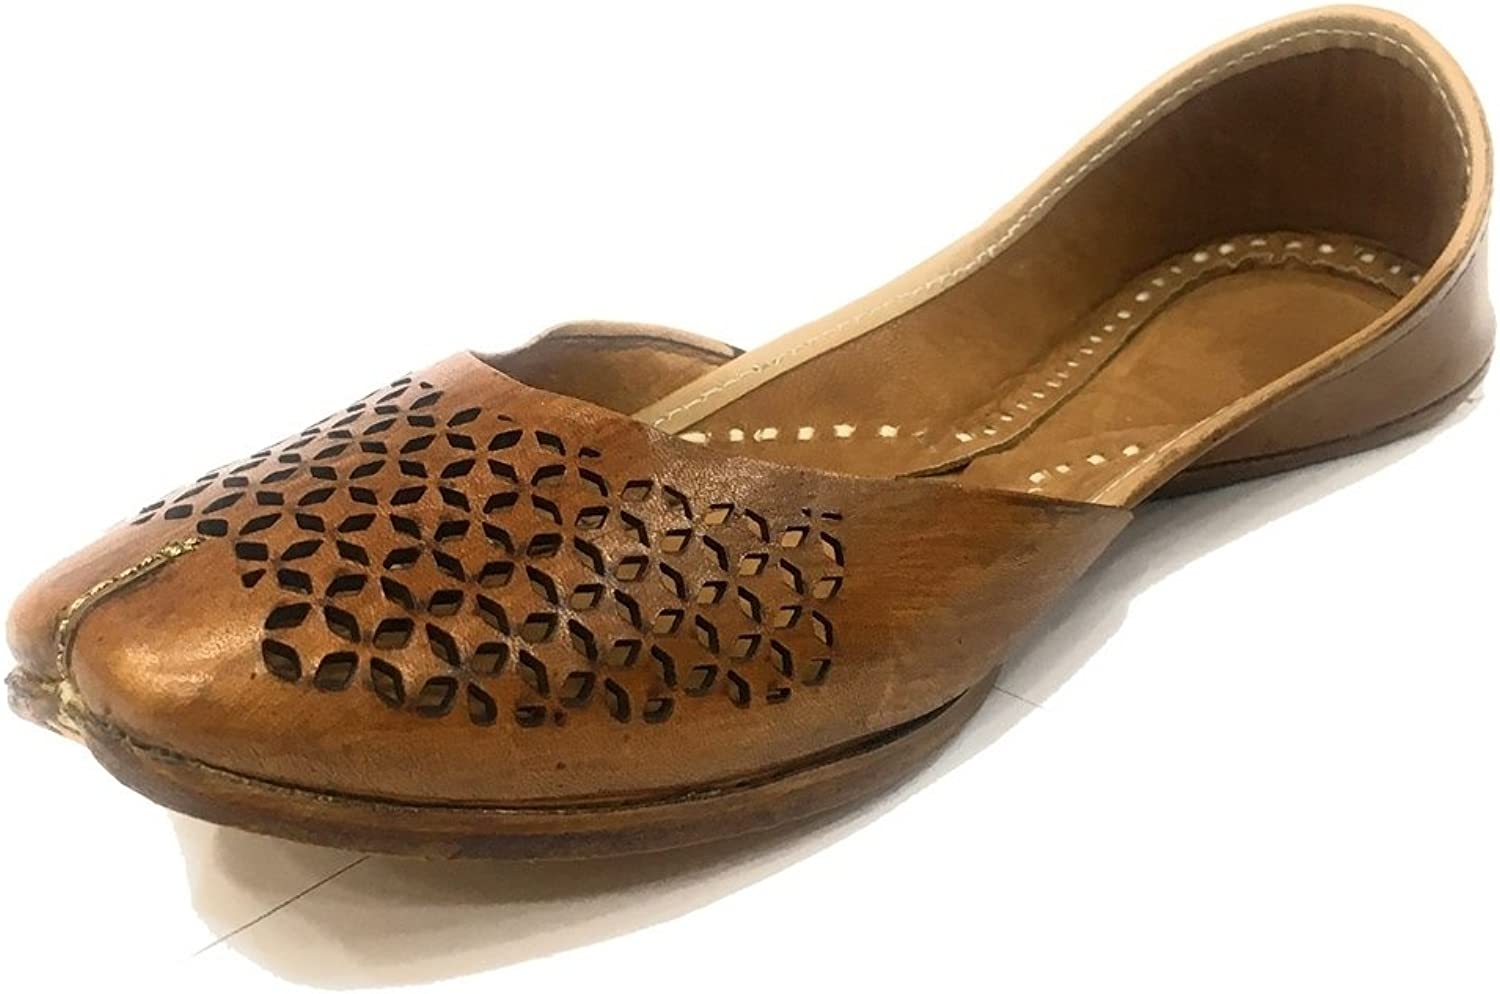 Step n Style Punjabi Jutti Khussa shoes Indian shoes Ballerina Ballet Casual shoes